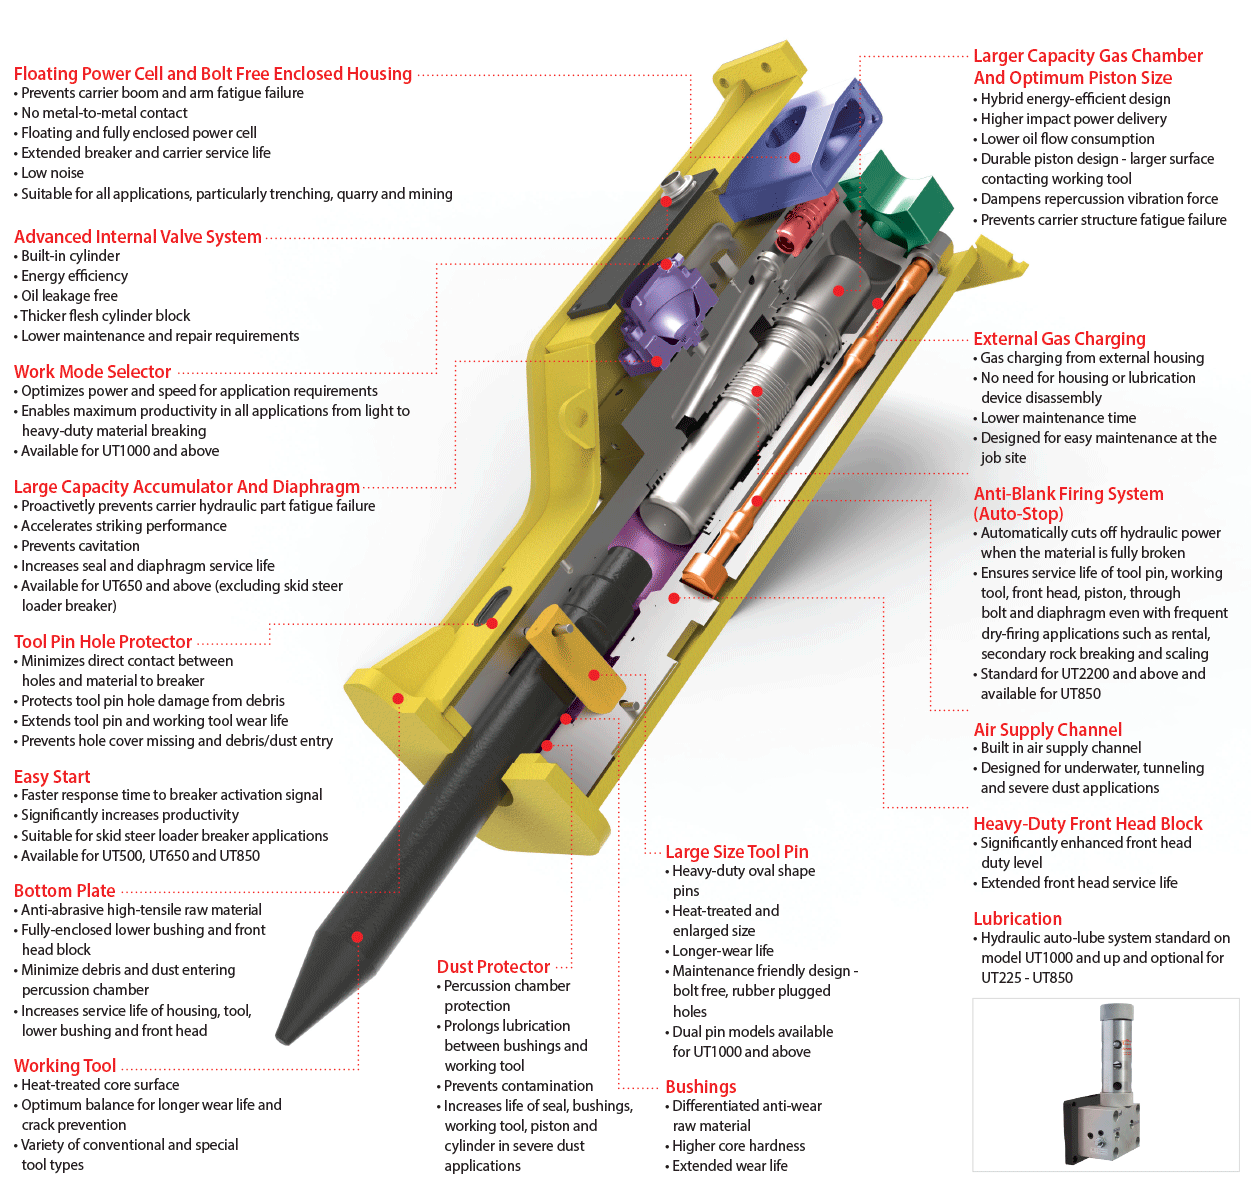 Internal Components and Features